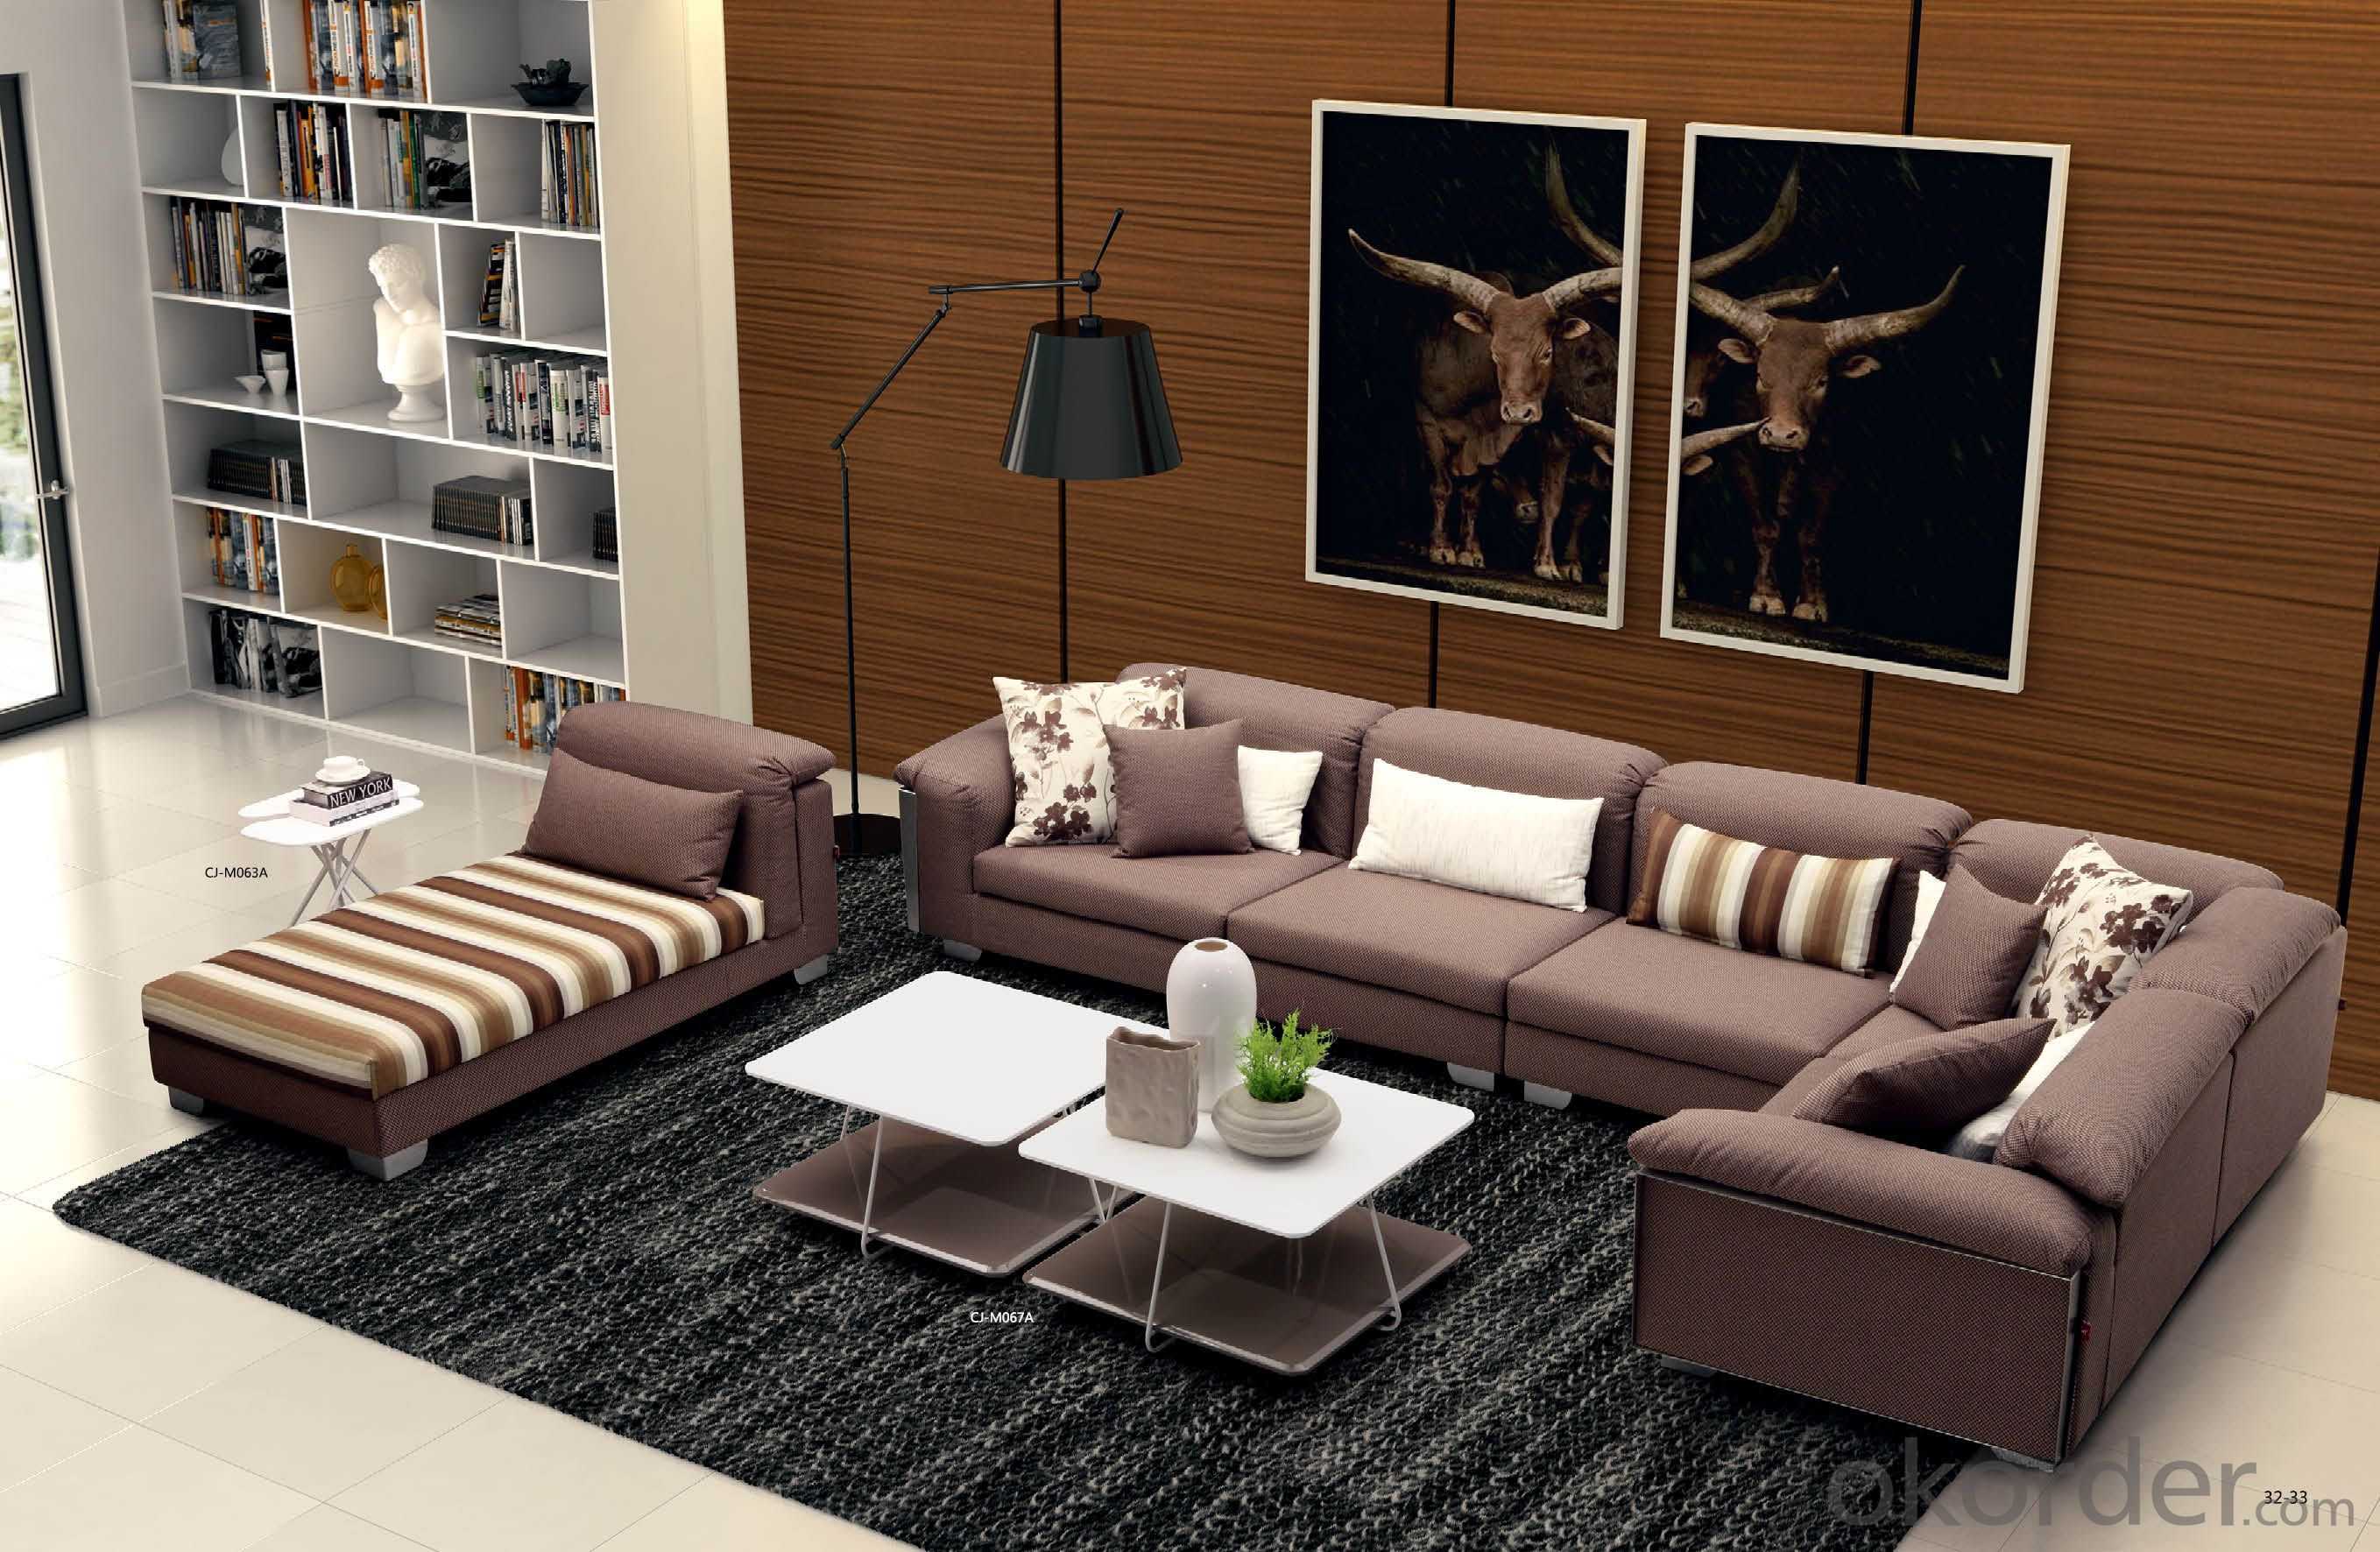 Leather sofa model-1